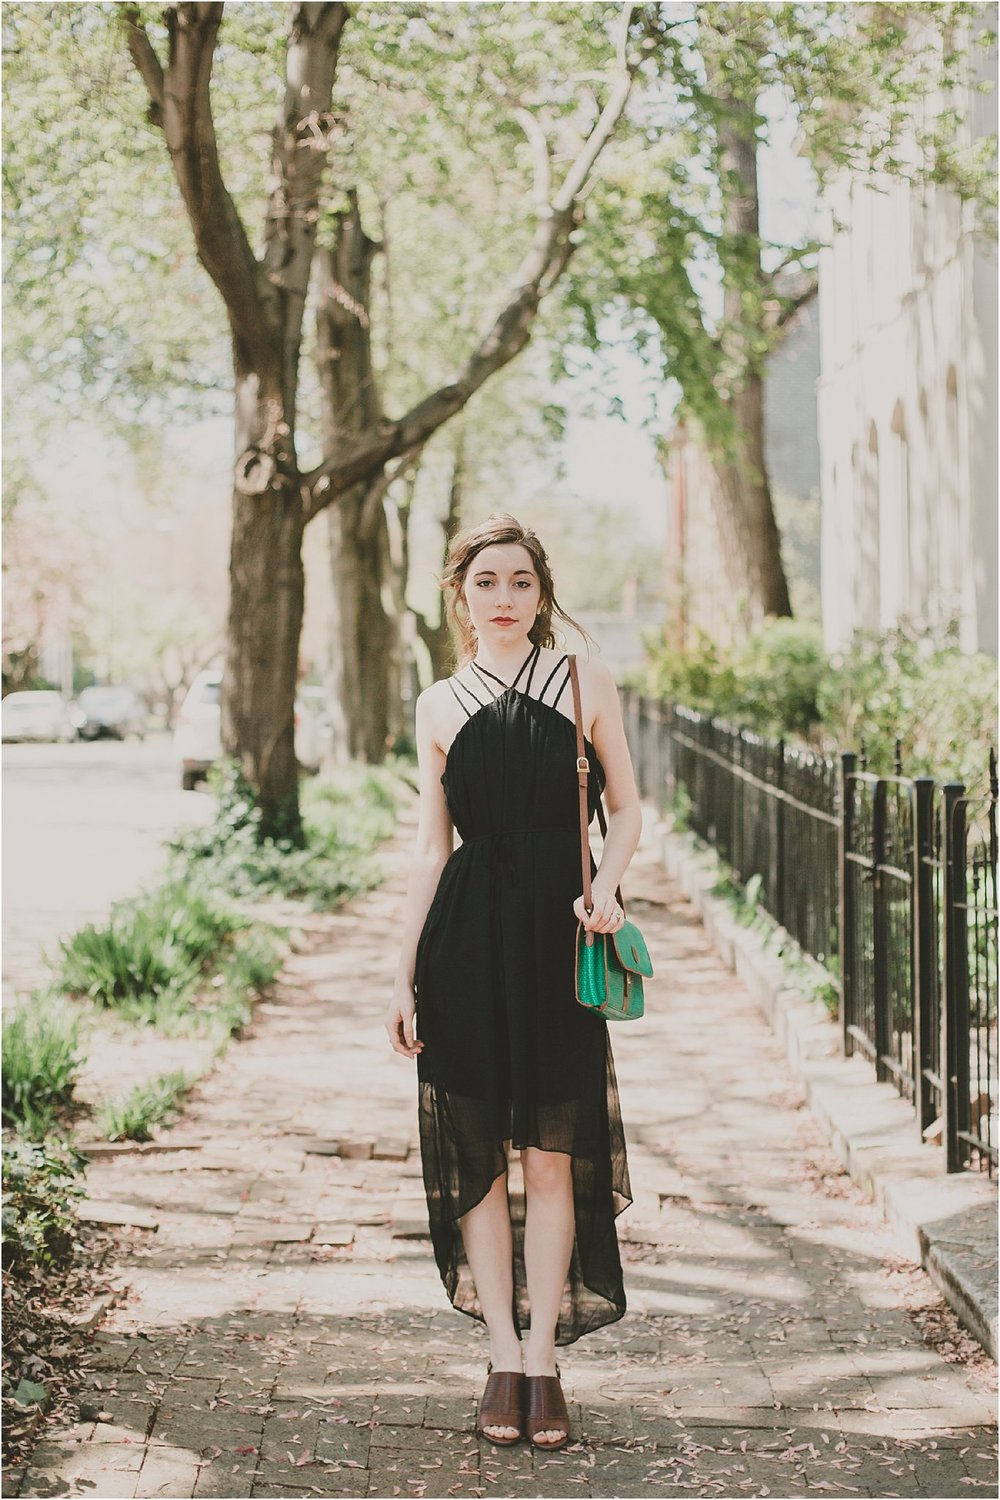 PattengalePhotography_WeekendWear_strappy_Boho_Dress_Romper_StLouis_Wedding_Photographer_Hipster_Urban_Style_StCharles_Missouri_BohoFashion_LafayetteSquare_Tobi__0212.jpg